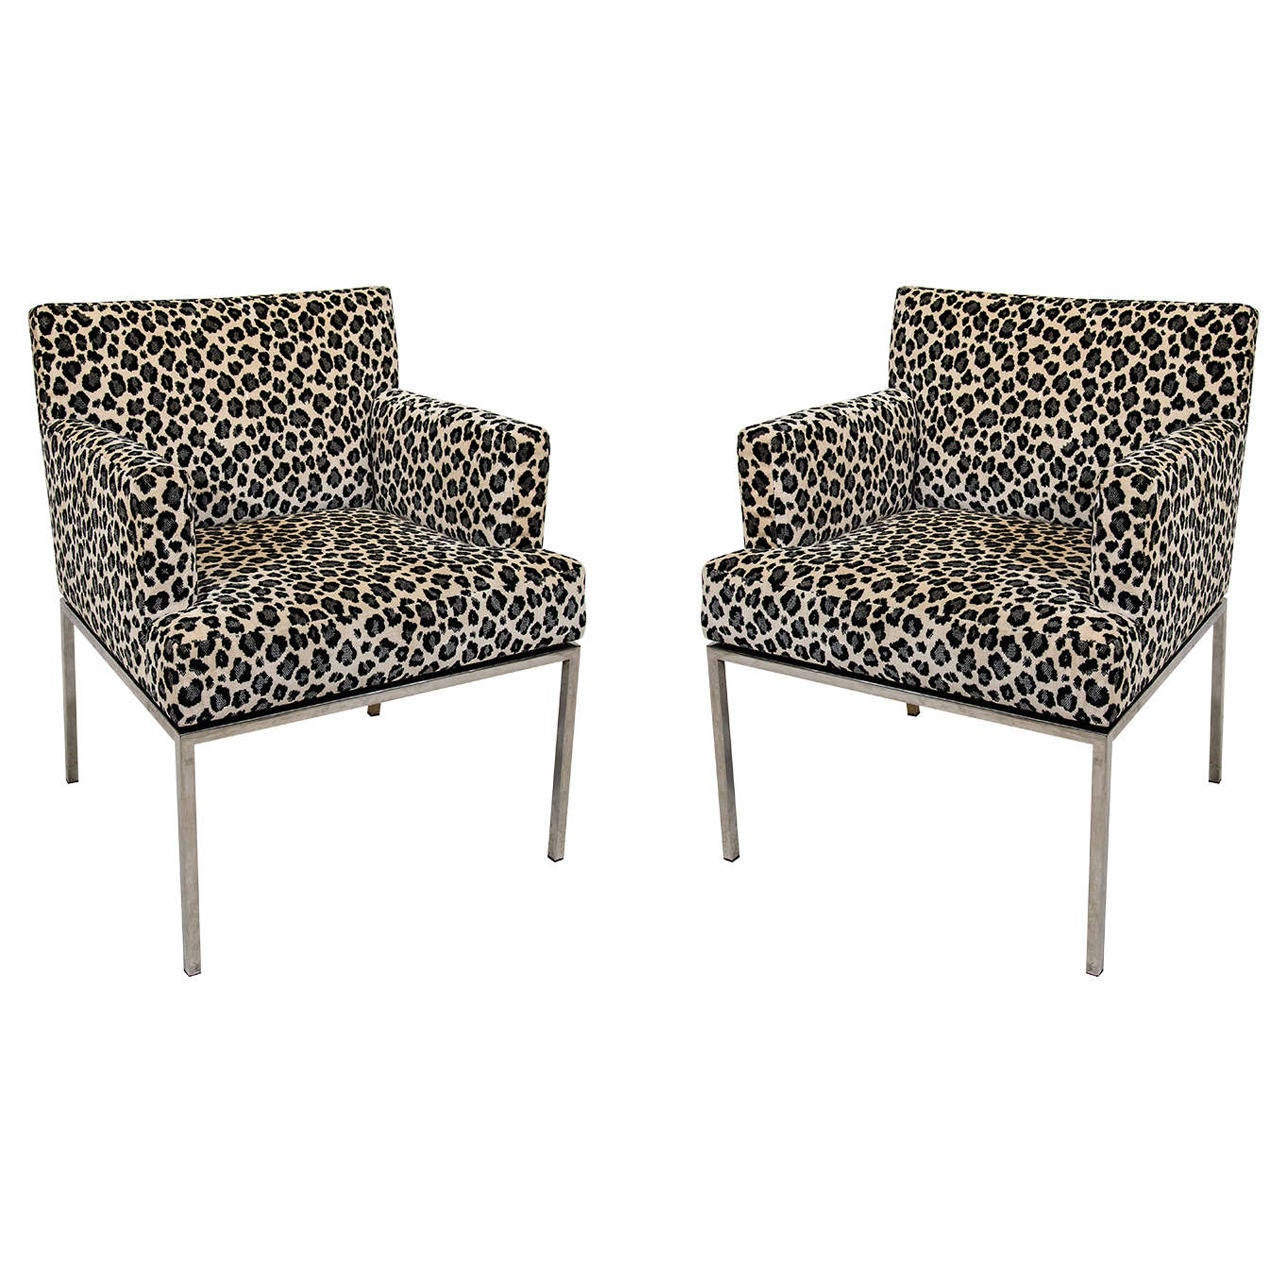 Pair Of Leopard Print Modernist Lounge Chairs At 1stdibs